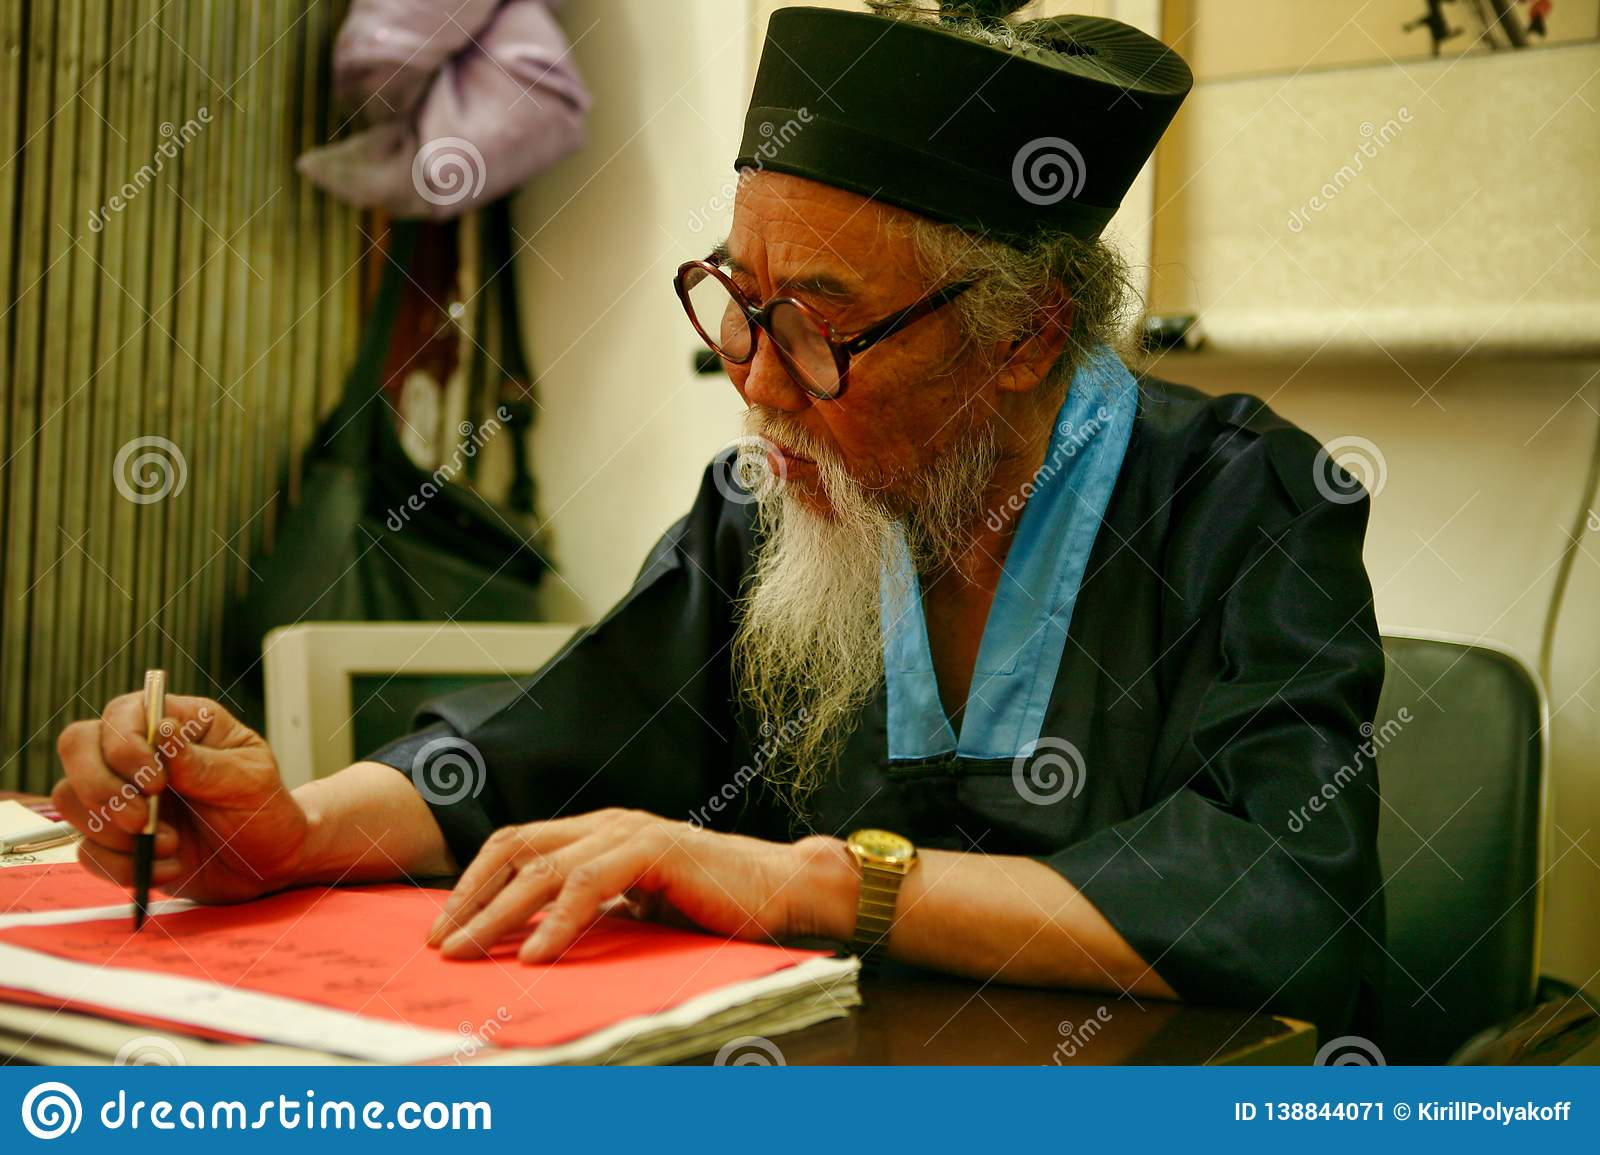 Beijing China - June 8, 2018: Chinese predictor and astrologer makes horoscope for the tourist.